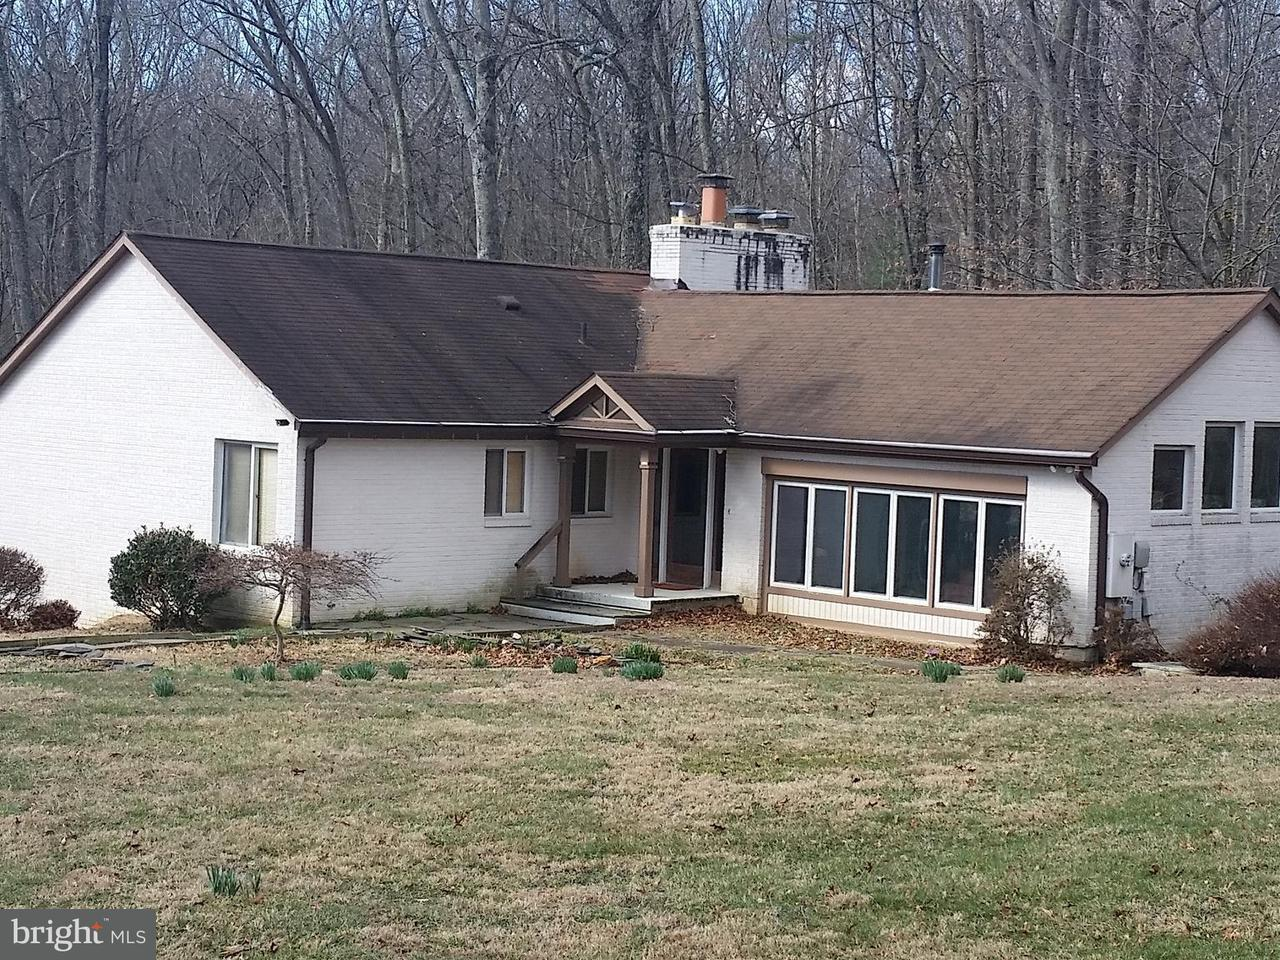 Other Residential for Rent at 604 Utterback Store Rd Great Falls, Virginia 22066 United States